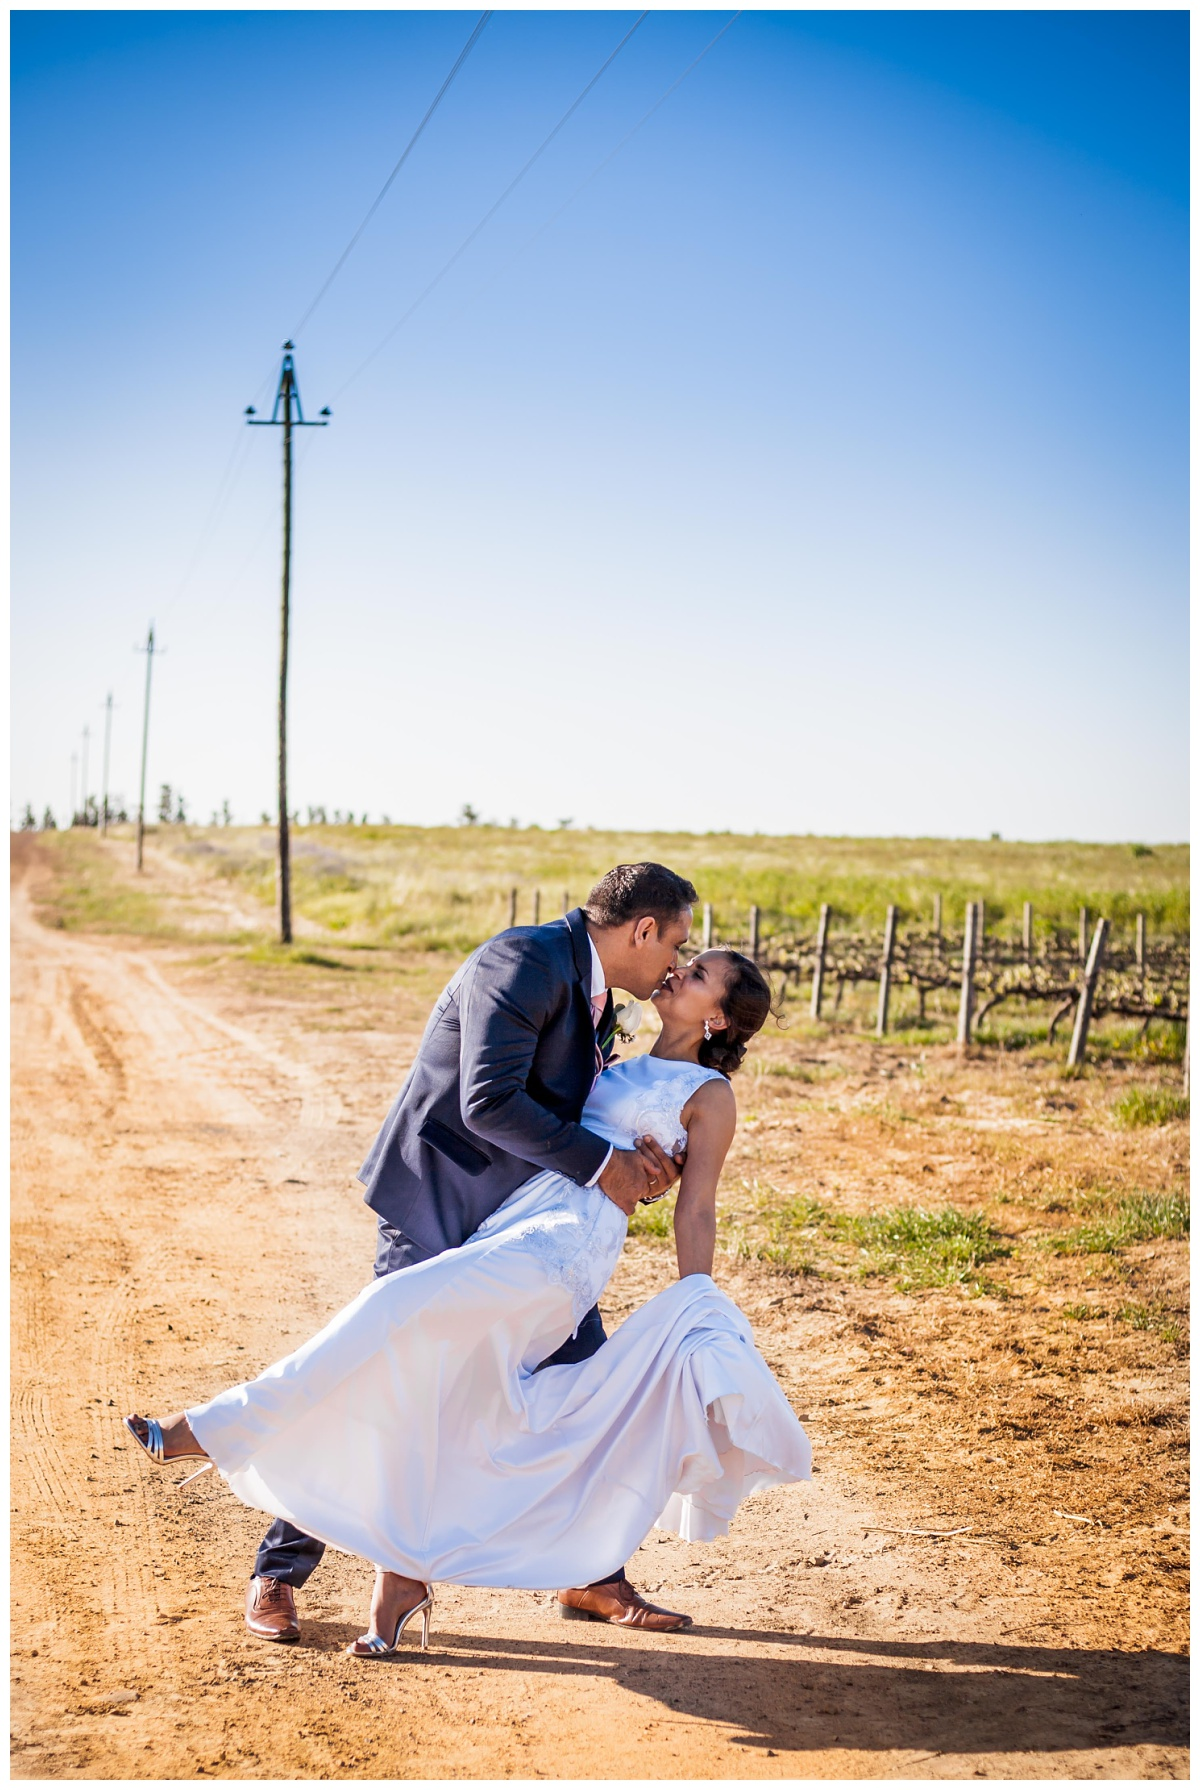 Cape Town,Photography,SamArendsePhotography,Wedding Photography,Weddings,